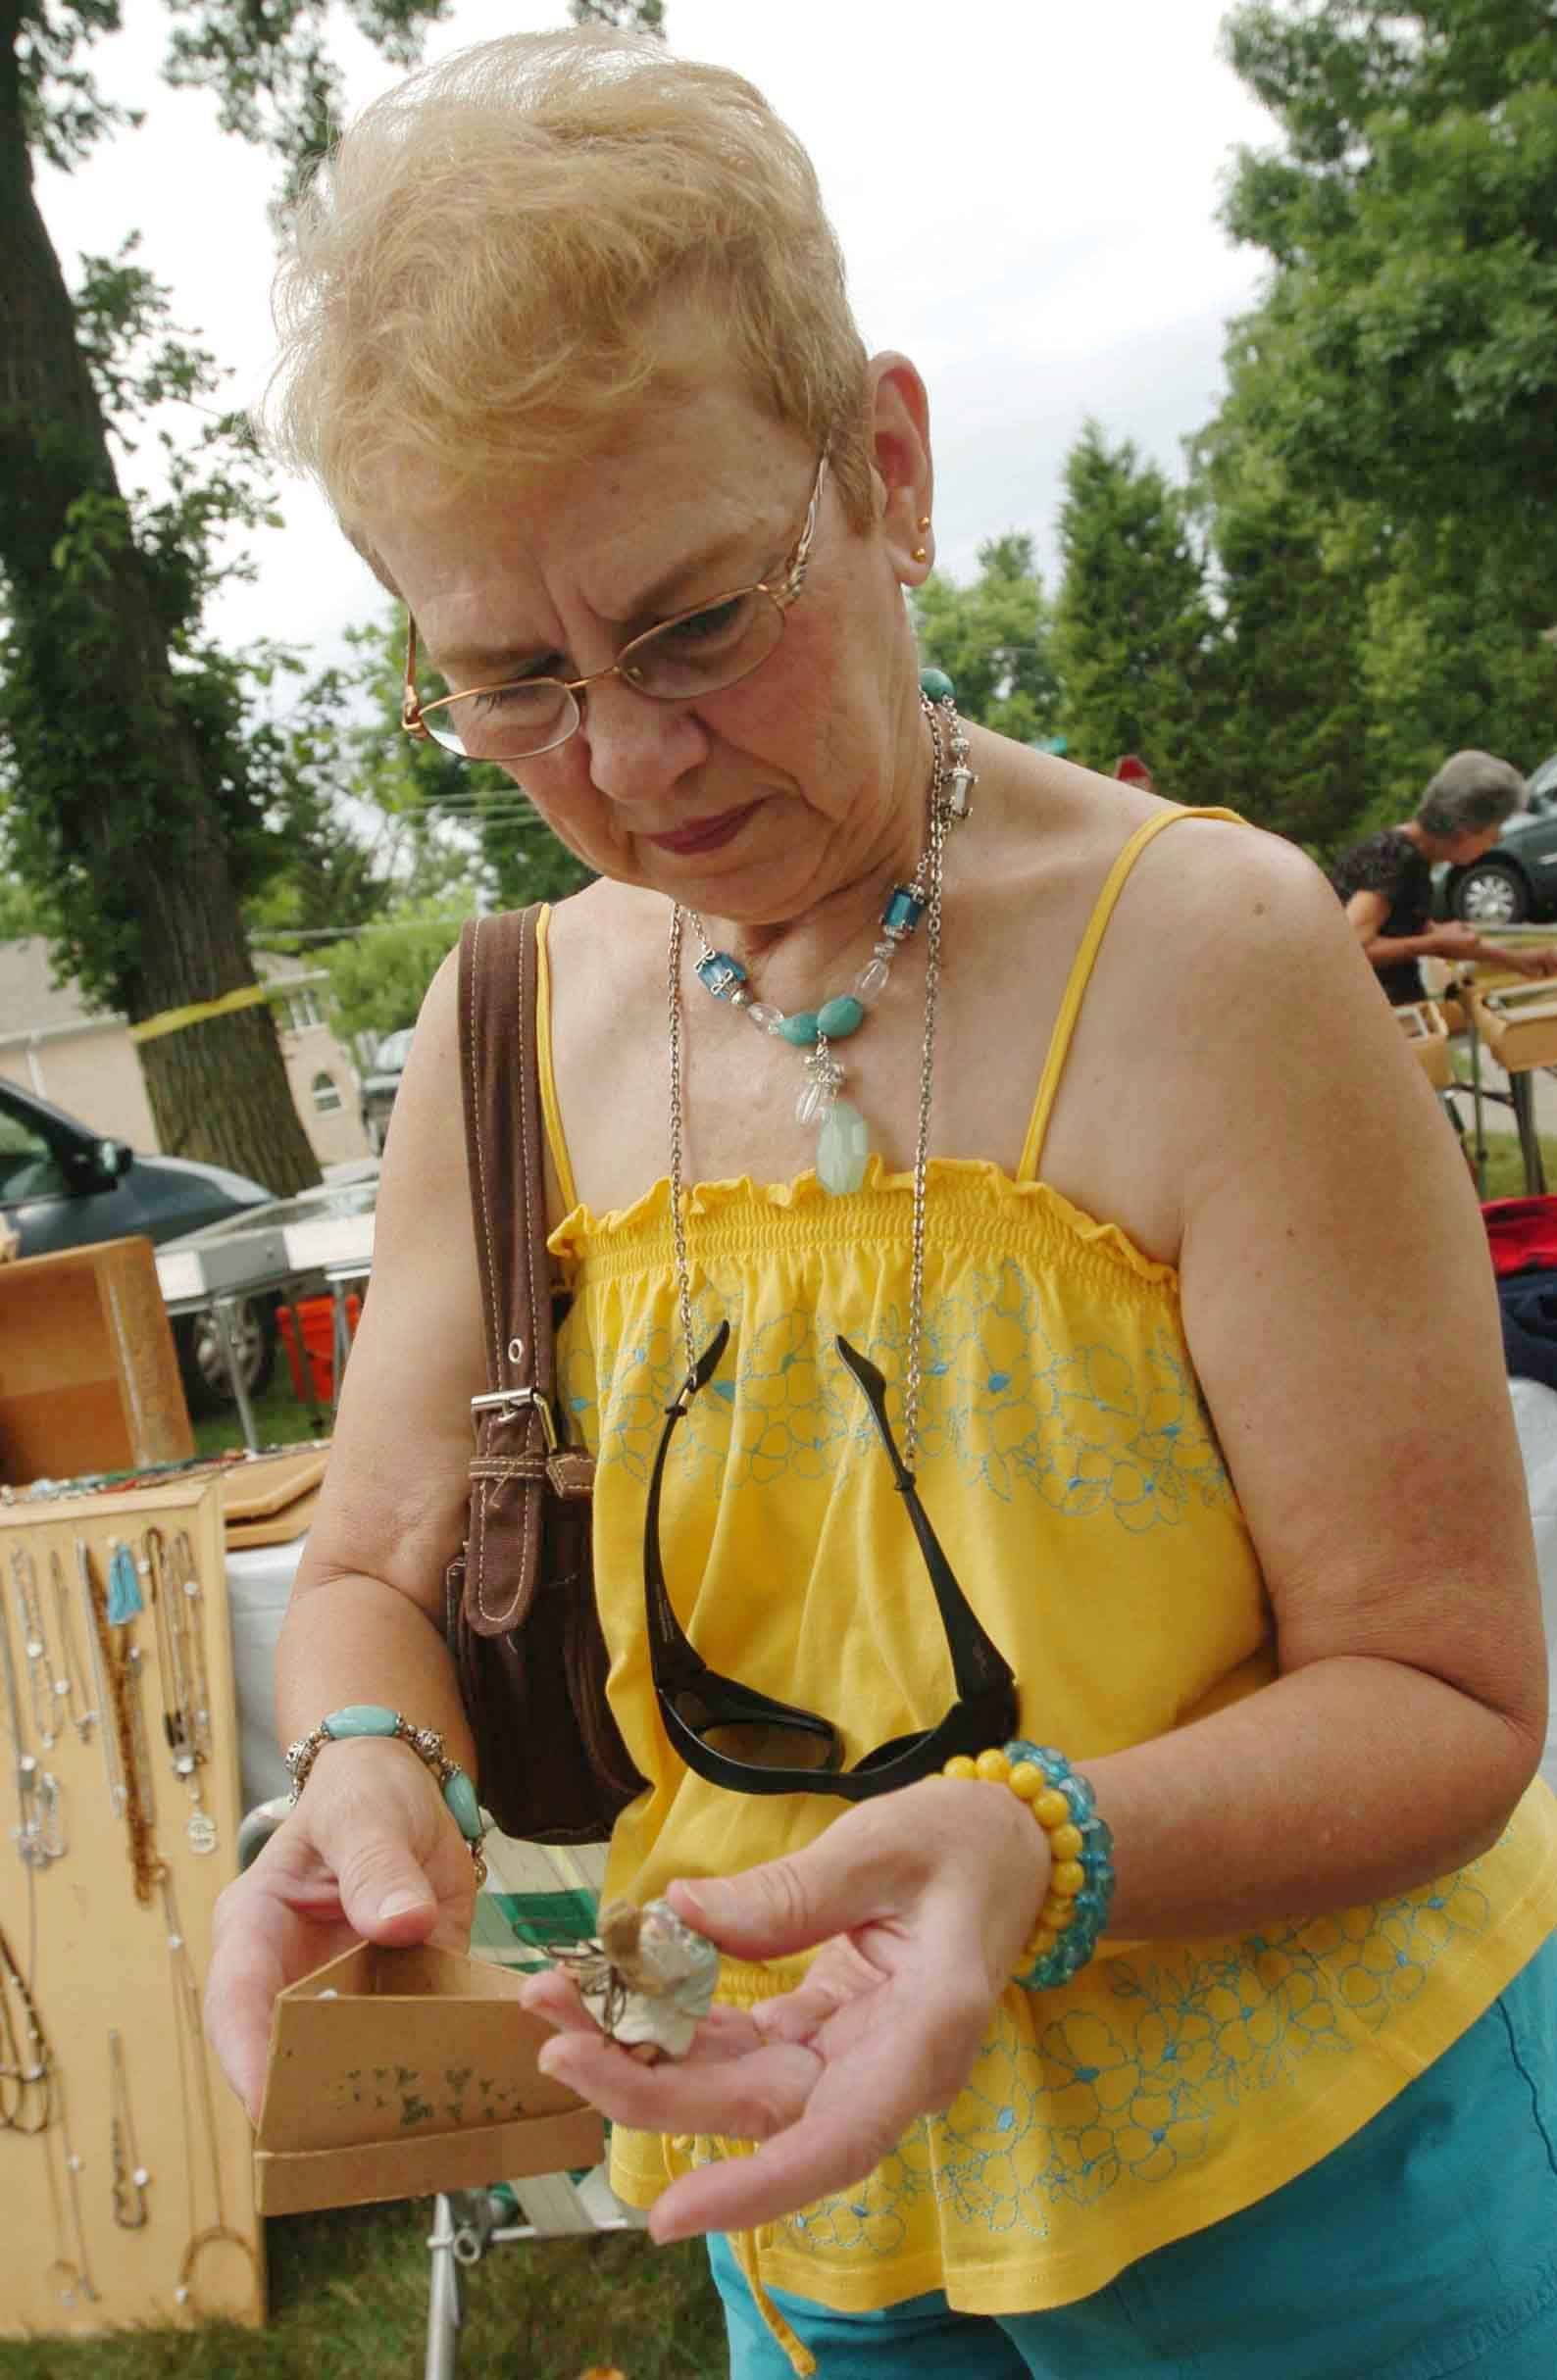 Cheryle Rizzo of Burbank looks at an angle ornament during the antique flea market at Washington Park during Itasca fest Saturday.